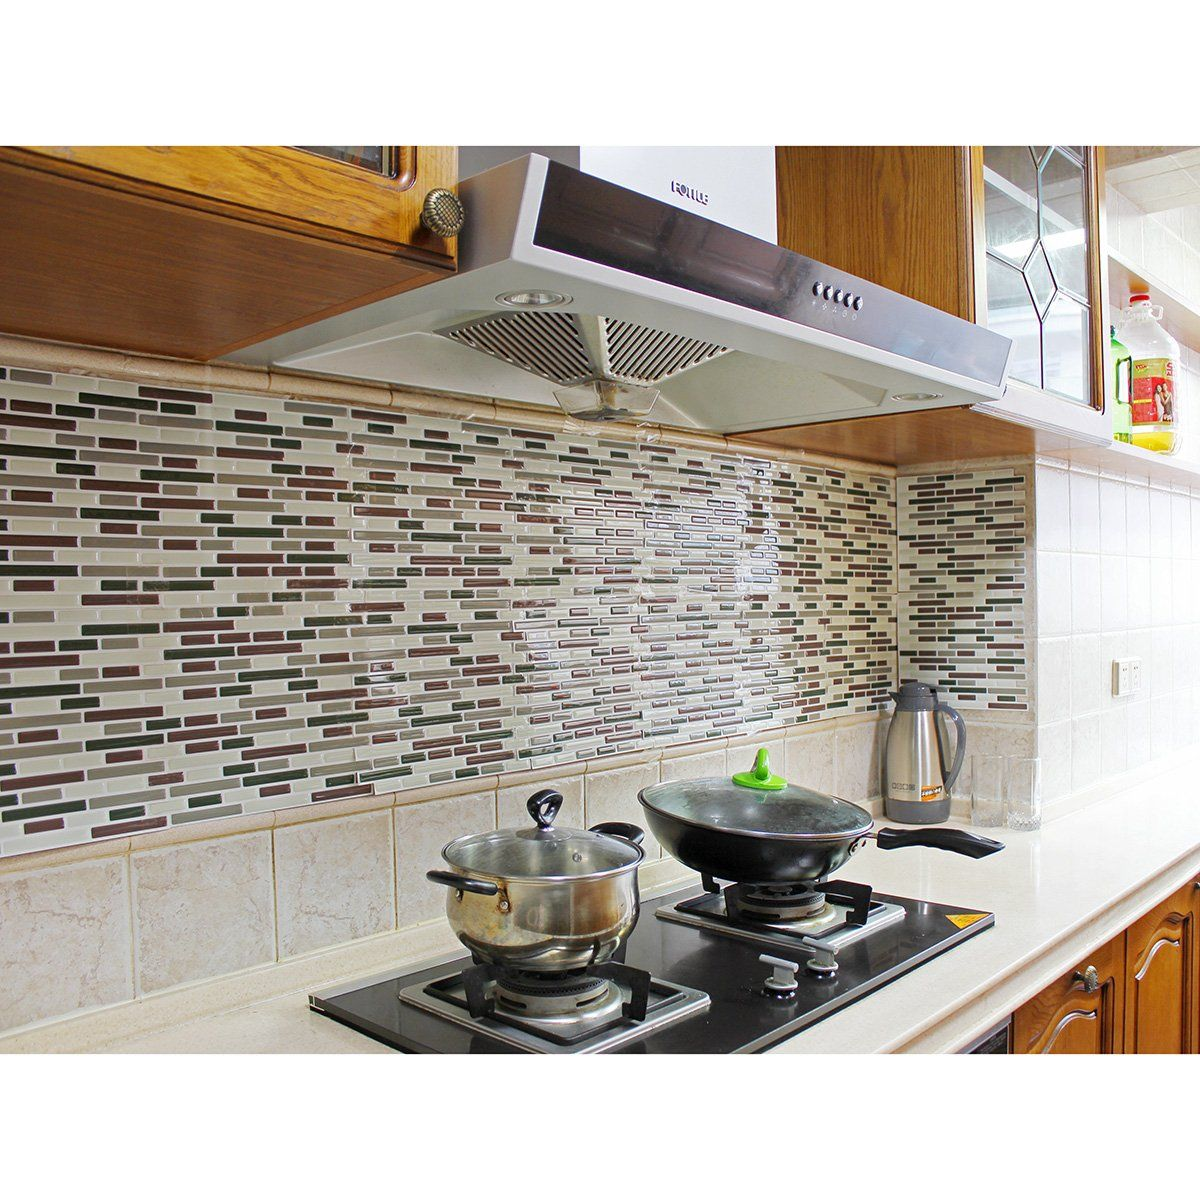 Backsplash Tile Decals